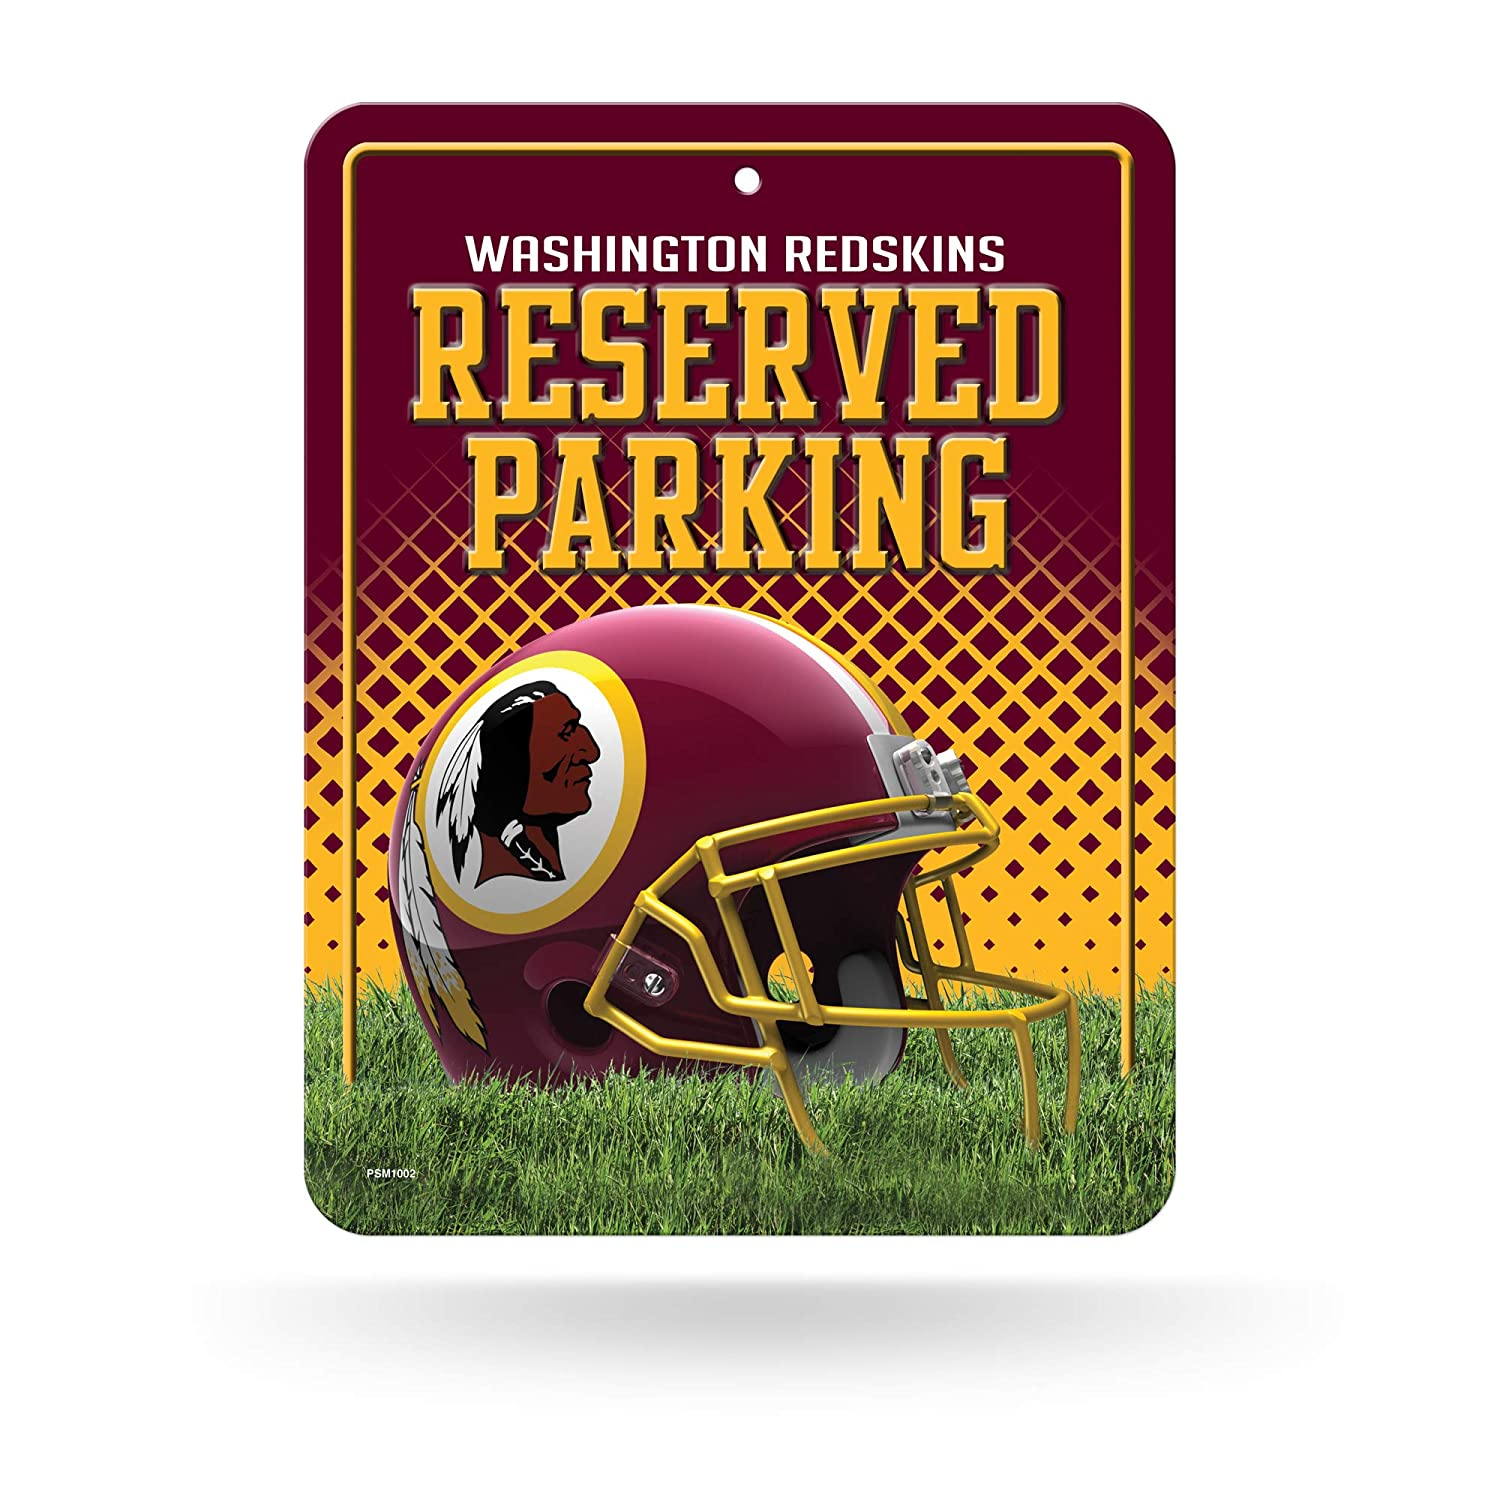 20,3 x 27,9 cm Redskins Metall Rico Parkschild NFL Washington